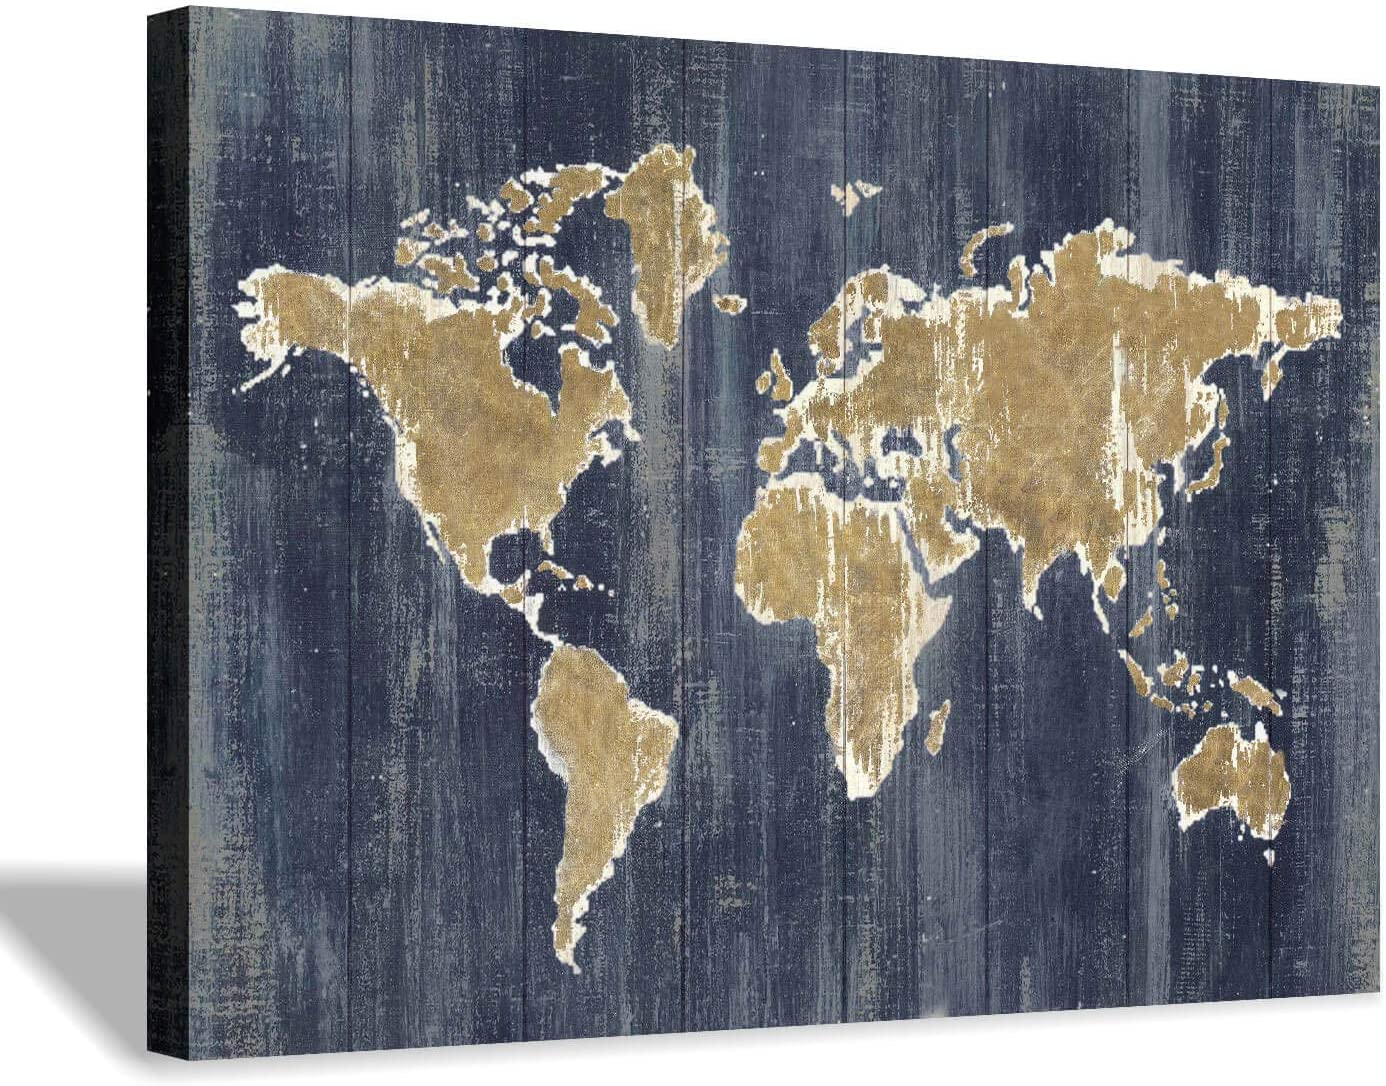 Hardy Gallery World Map Wall Art Print Old Blue Painting Print On Wrapped Canvas Wall Decor For Office Living Room 36 X24 X1pcs Paintings